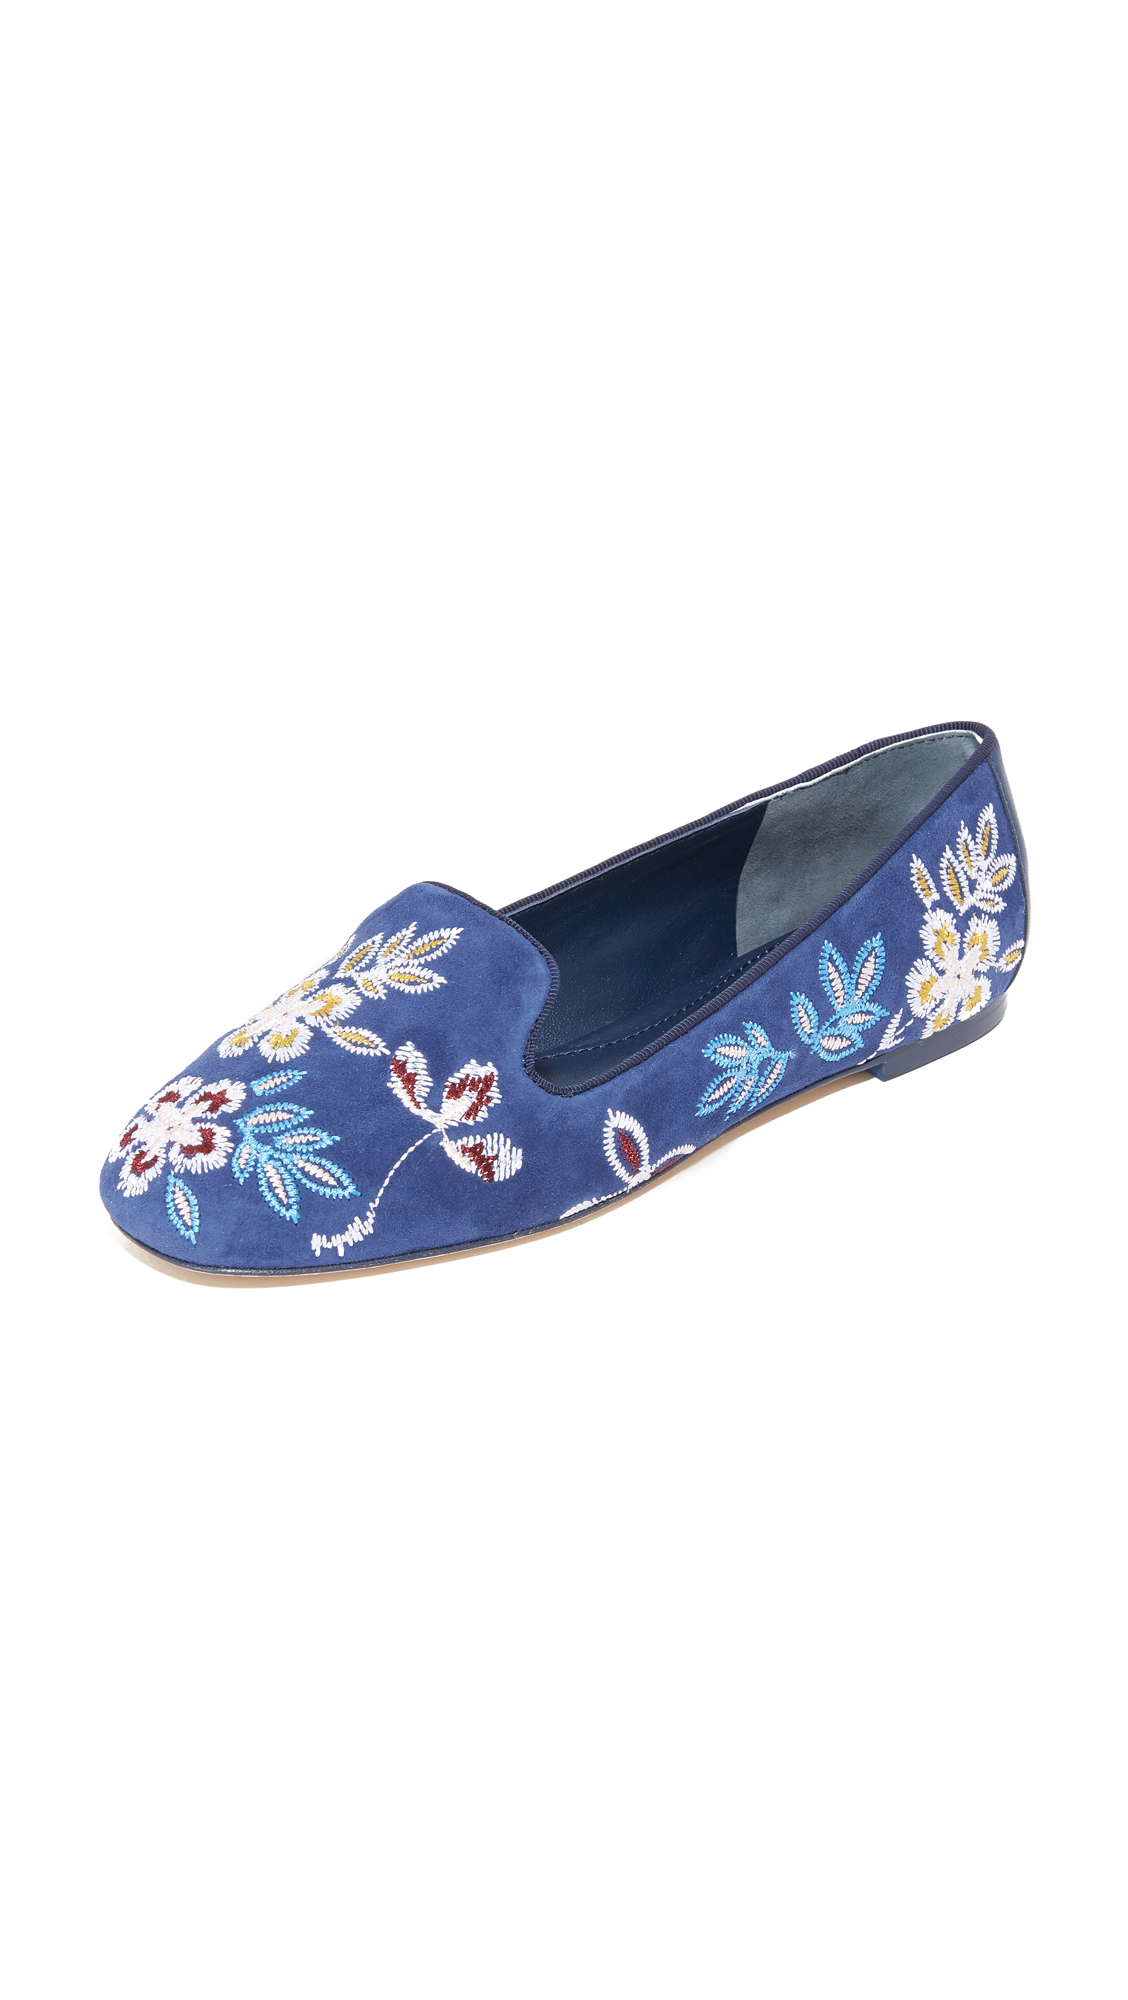 ee79f6a6310 Tory Burch Embroidered Floral Smoking Slippers